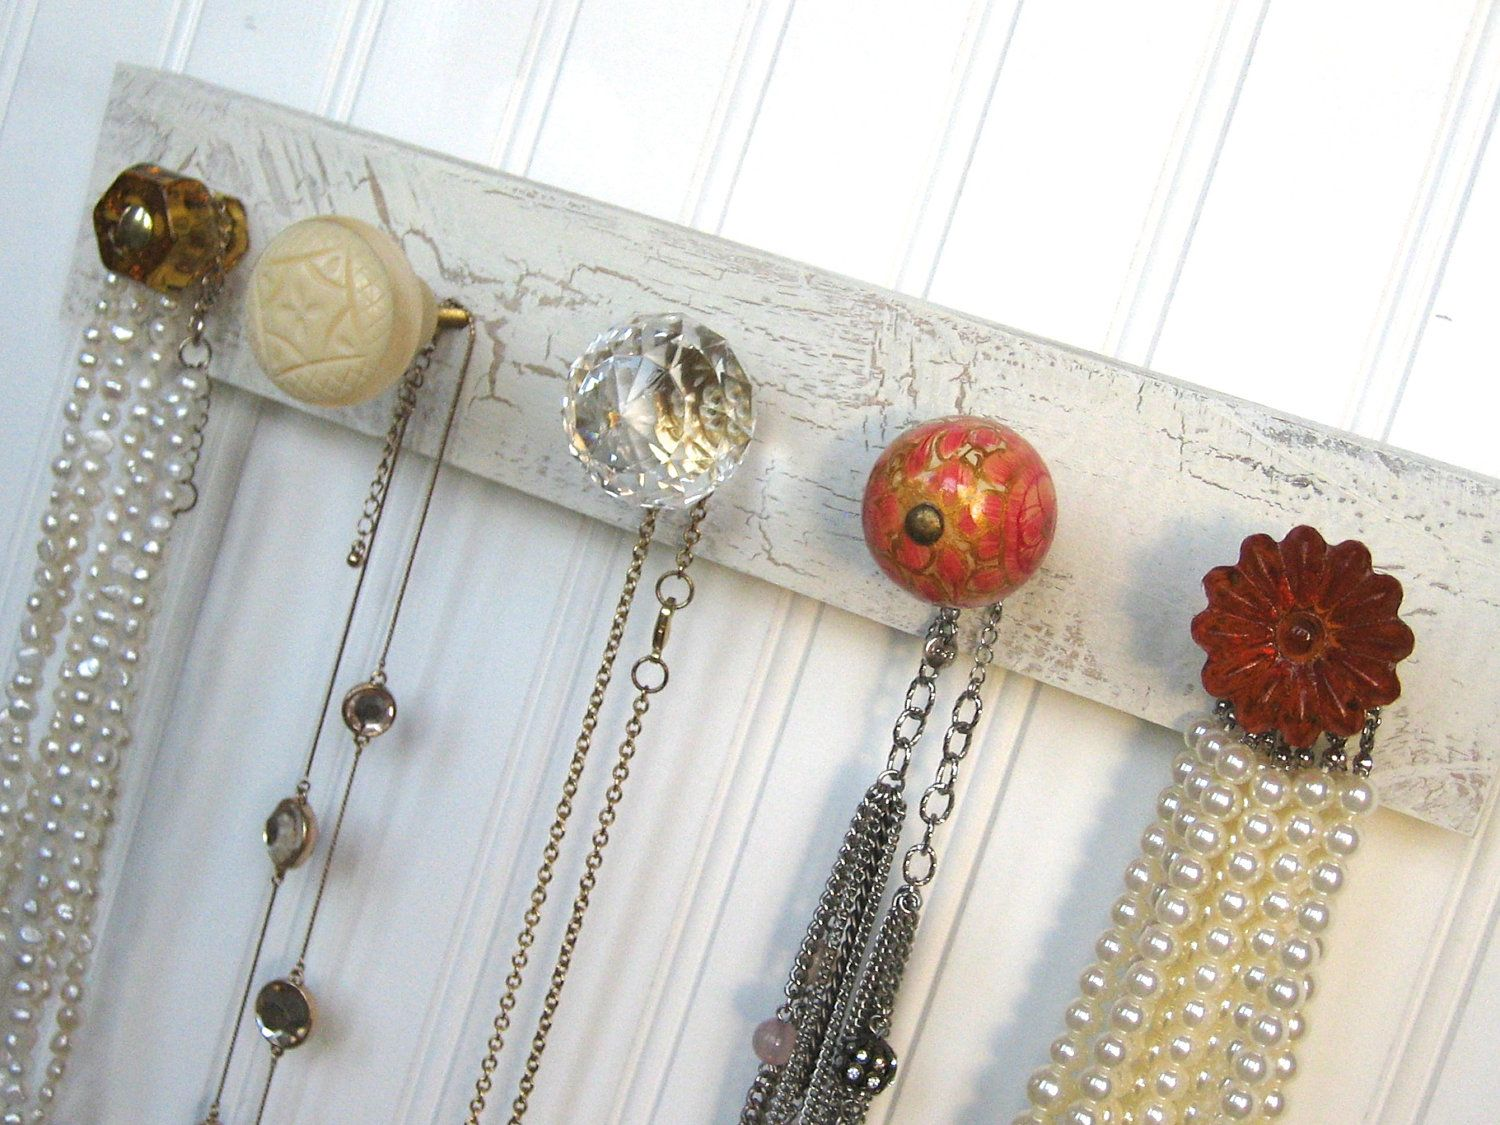 Hanging+Jewelry+Rack+/+Necklace+Organizer+in+by+AuntDedesBasement,+$32.00